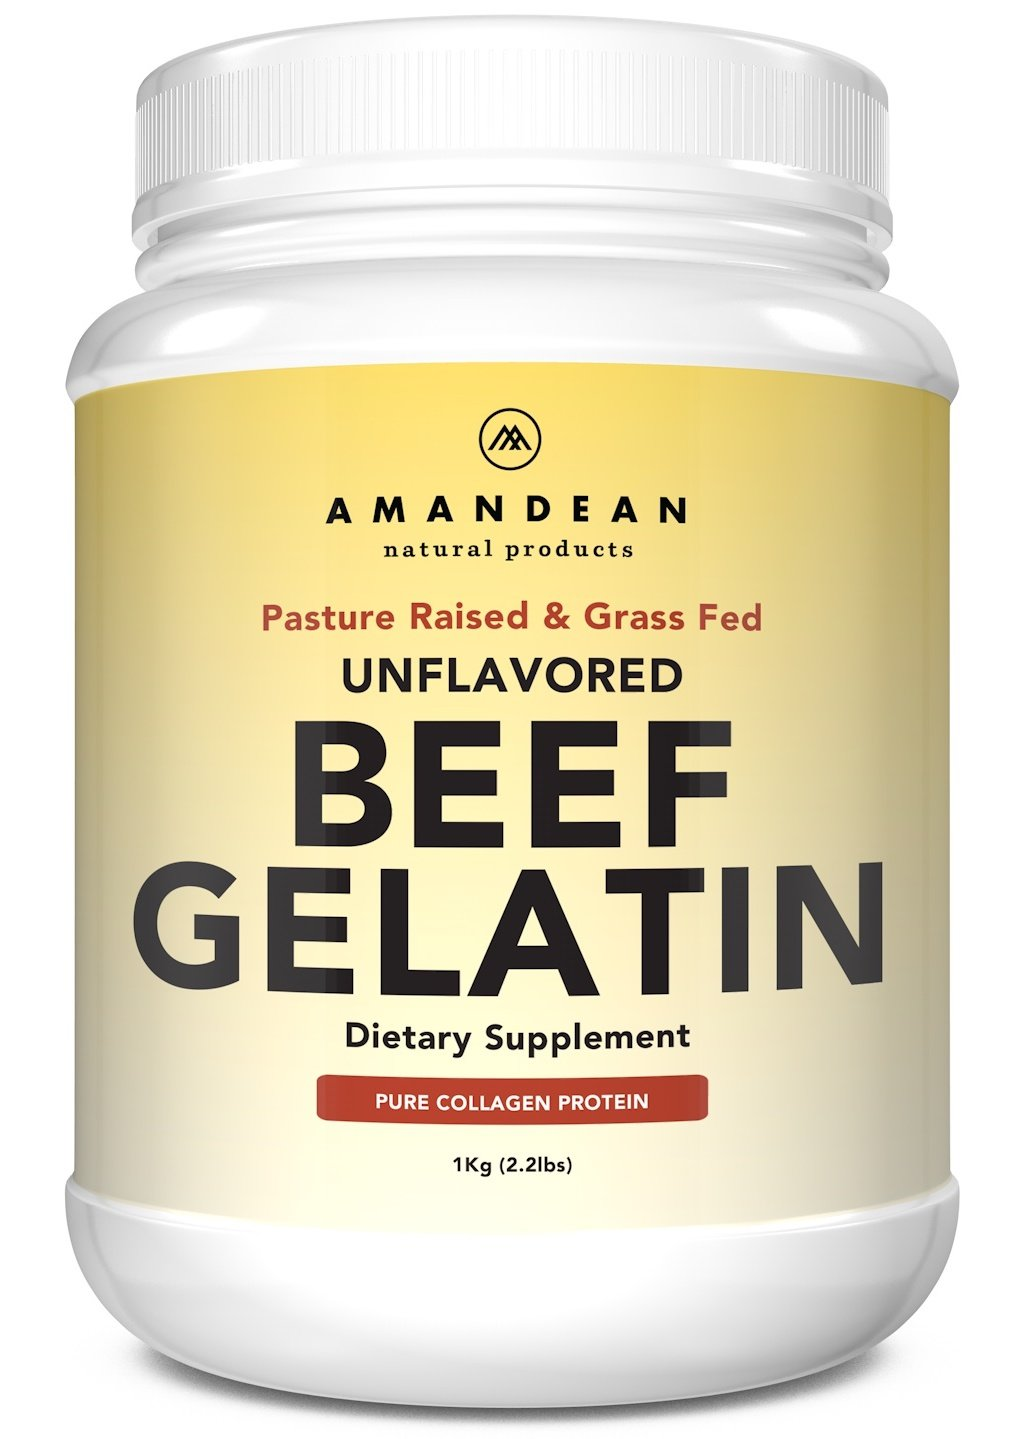 Premium Grass Fed Beef Gelatin Powder (XL 2.2lbs) | Unflavored | Anti-Aging Collagen Protein Supplement | 18 Amino Acids for Healthy Skin, Hair, Joints, Gut | Paleo Friendly | Gluten Free & Non GMO by Amandean